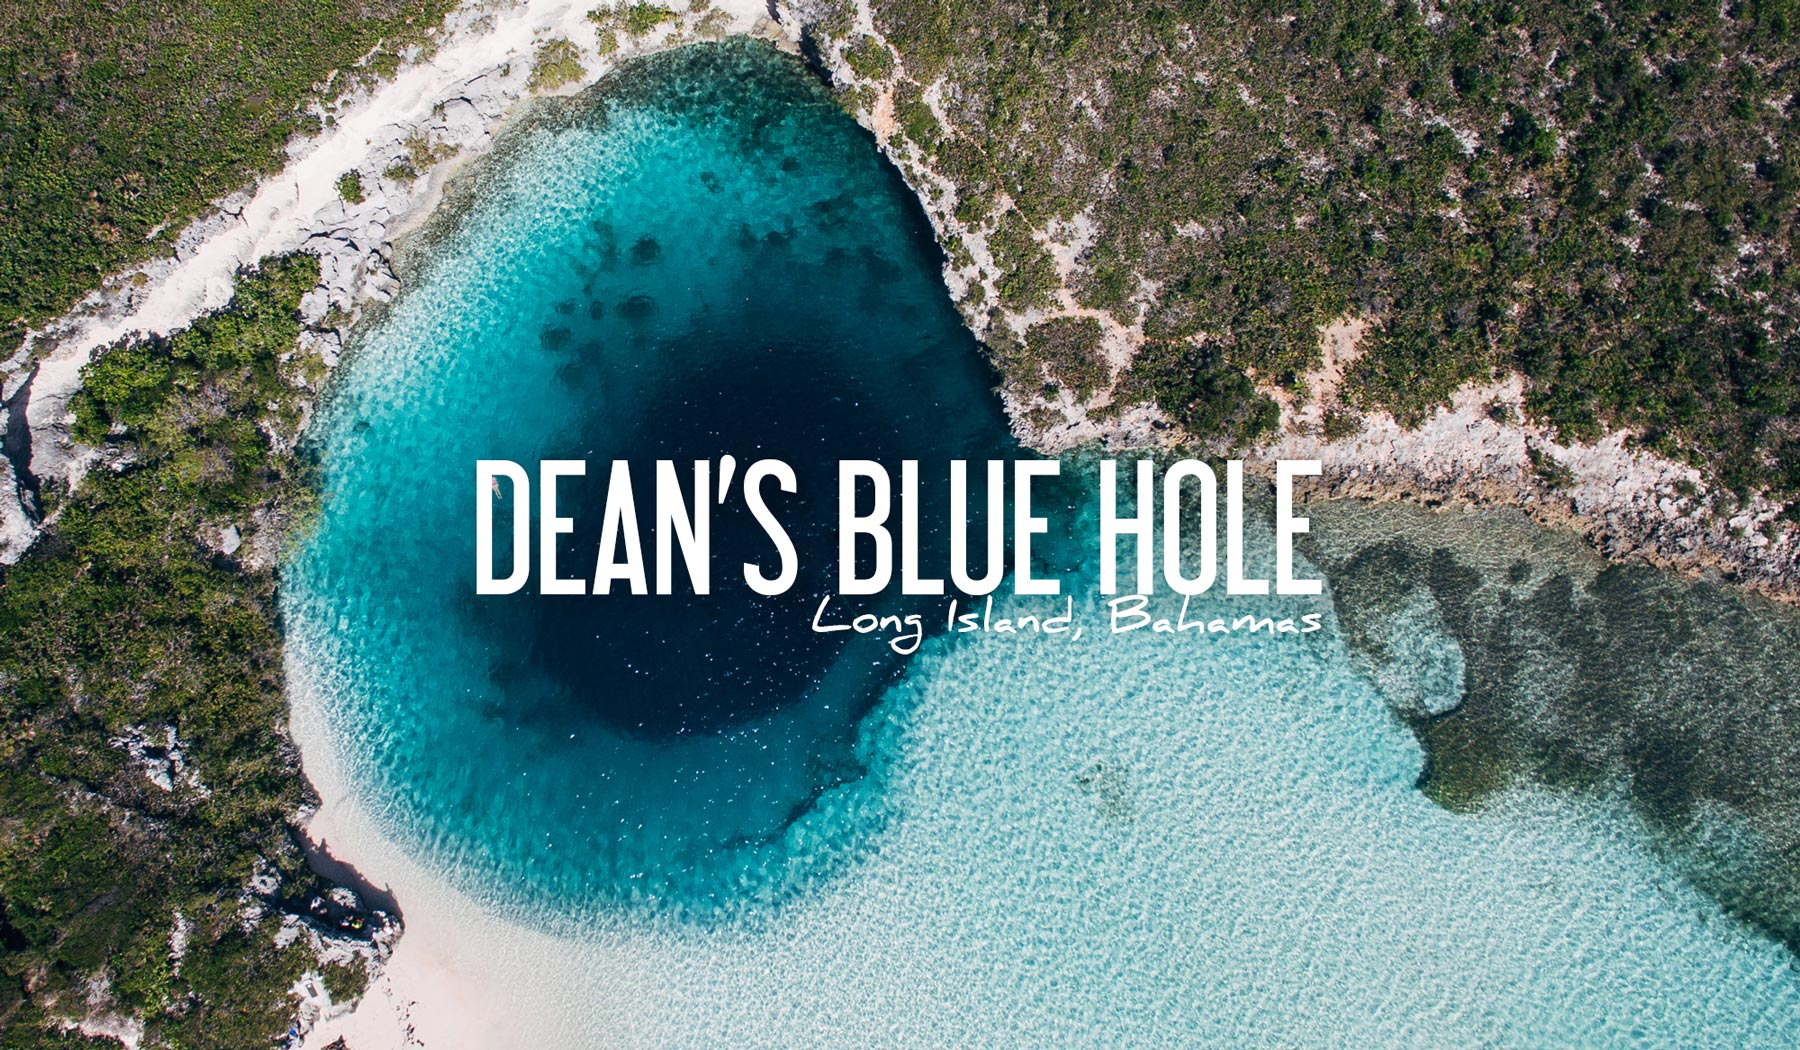 Bahamas deans blue hole long island